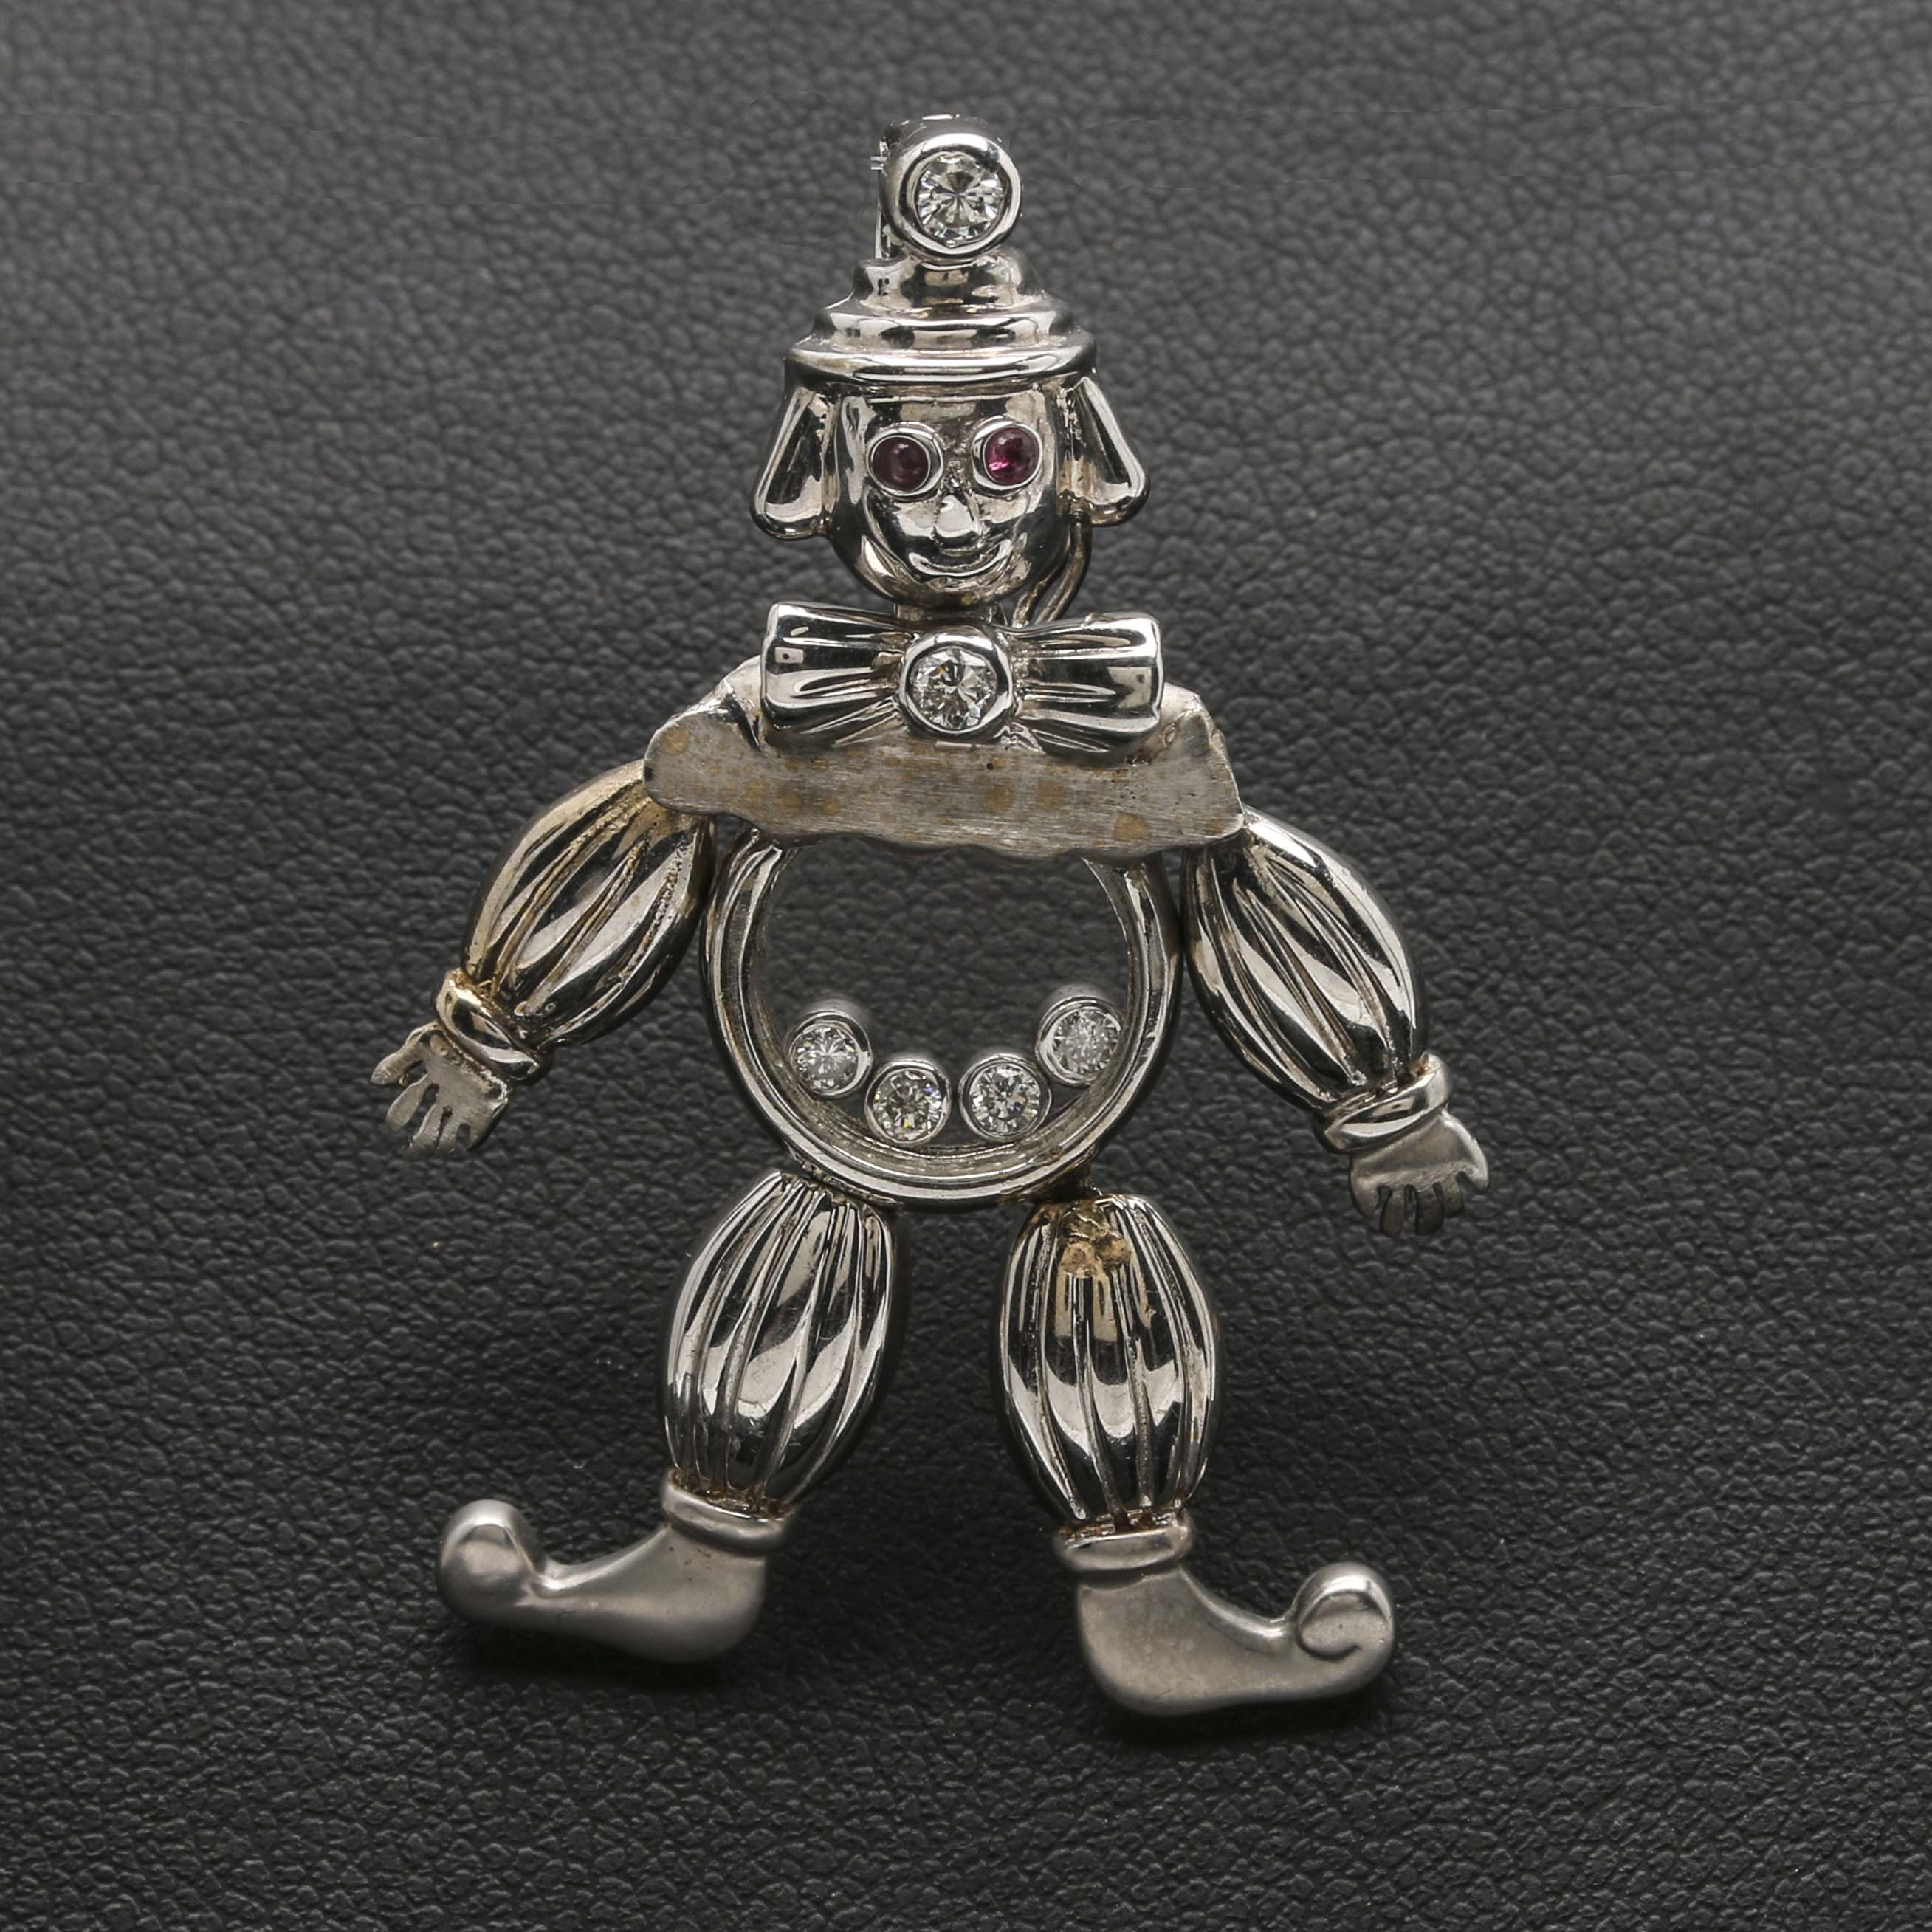 18K White Gold Floating Diamond and Ruby Clown Pendant